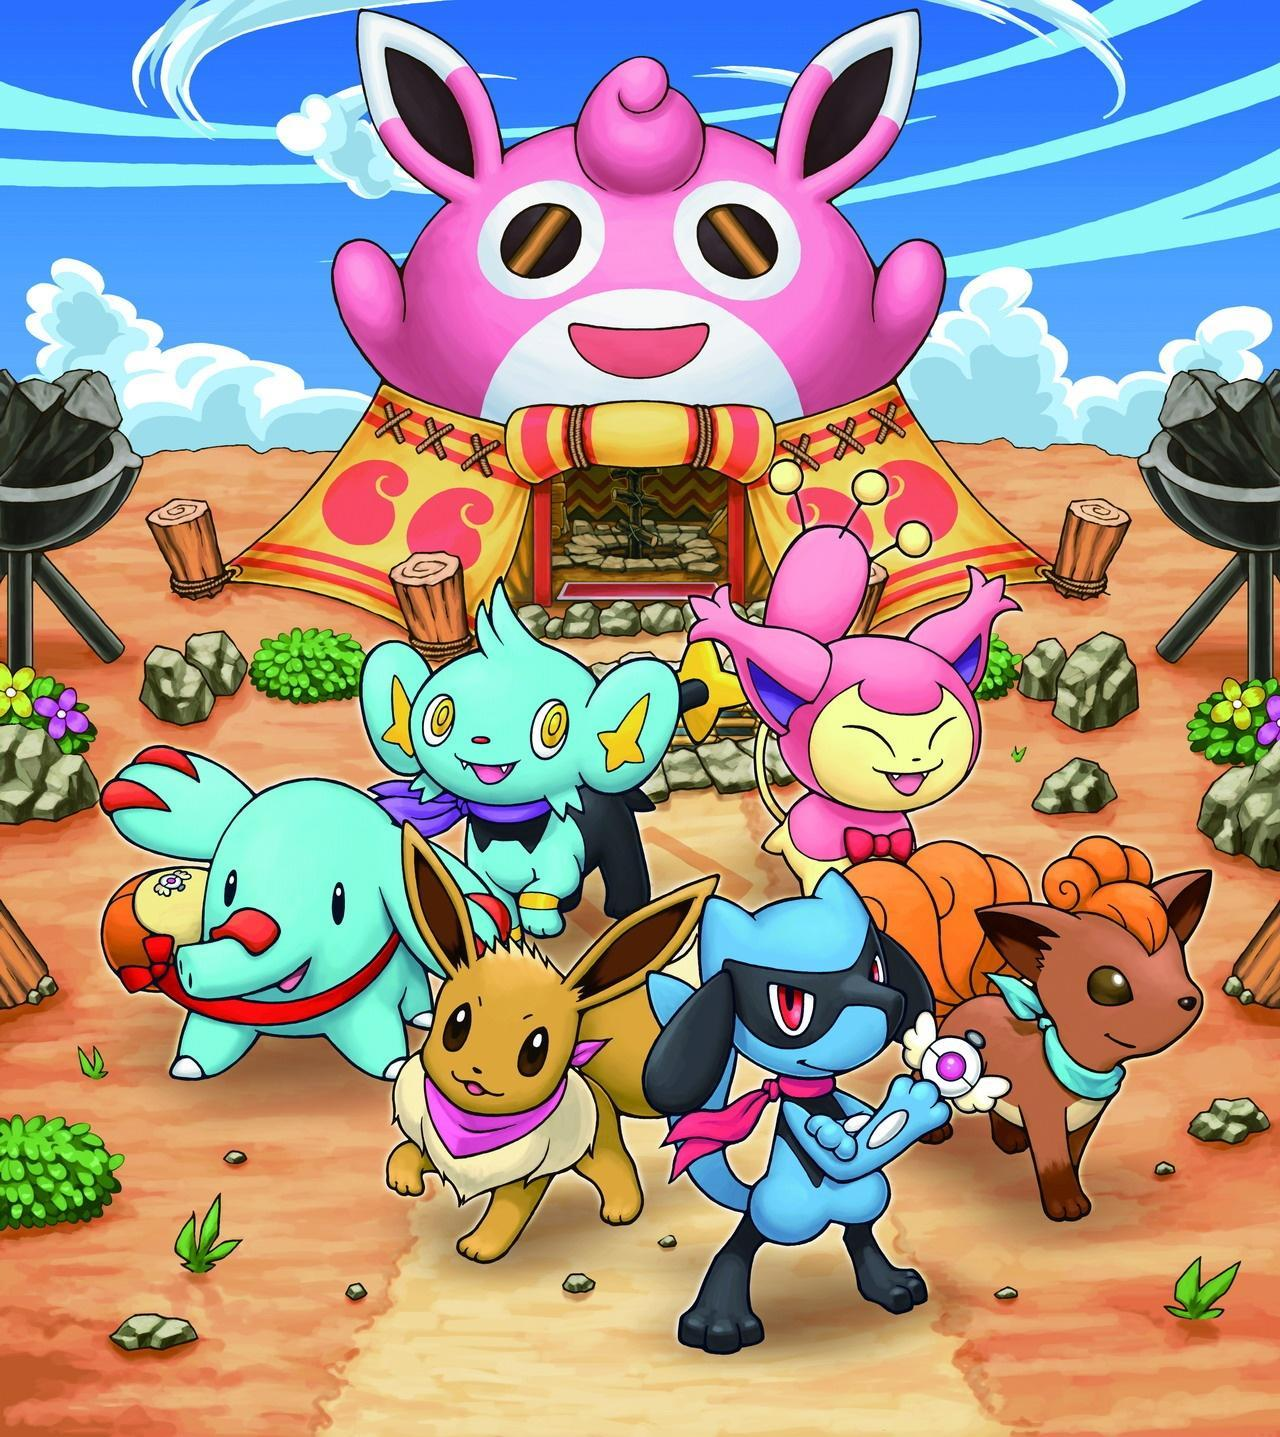 What Pokemon Mystery Dungeon Hero are you?